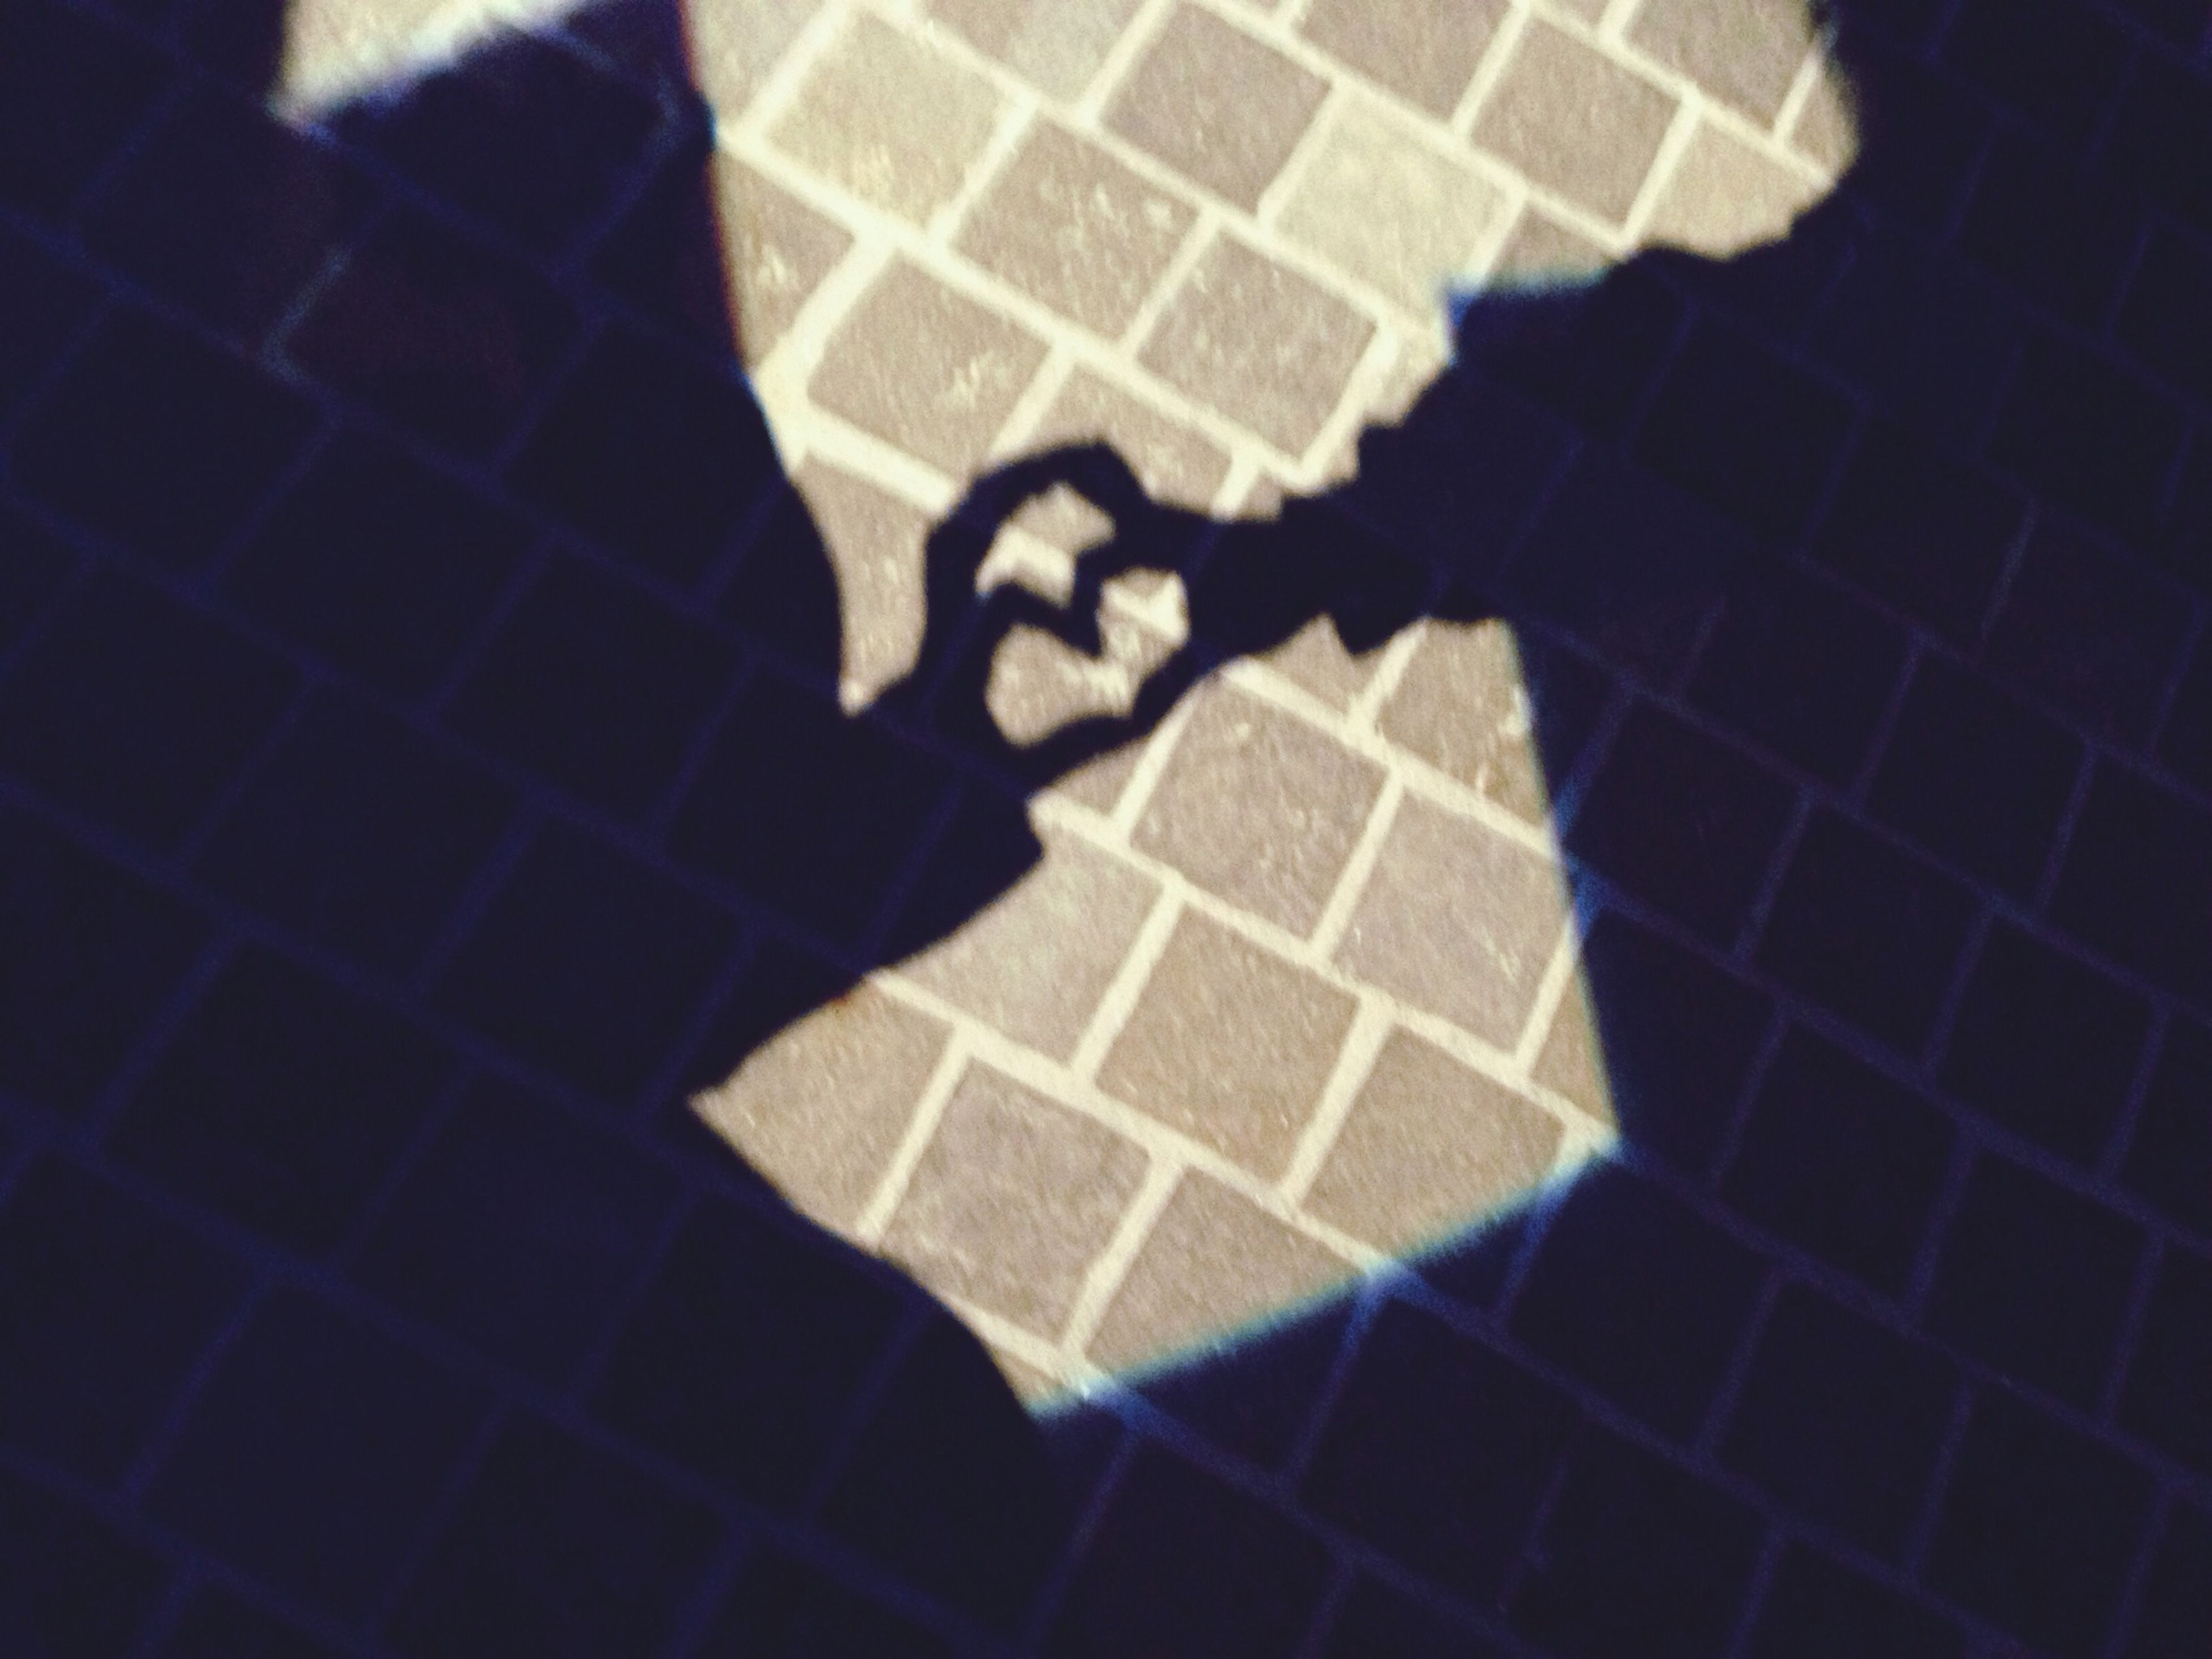 high angle view, pattern, shadow, low section, indoors, tiled floor, flooring, focus on shadow, person, floor, sunlight, paving stone, textured, shoe, standing, close-up, human foot, tile